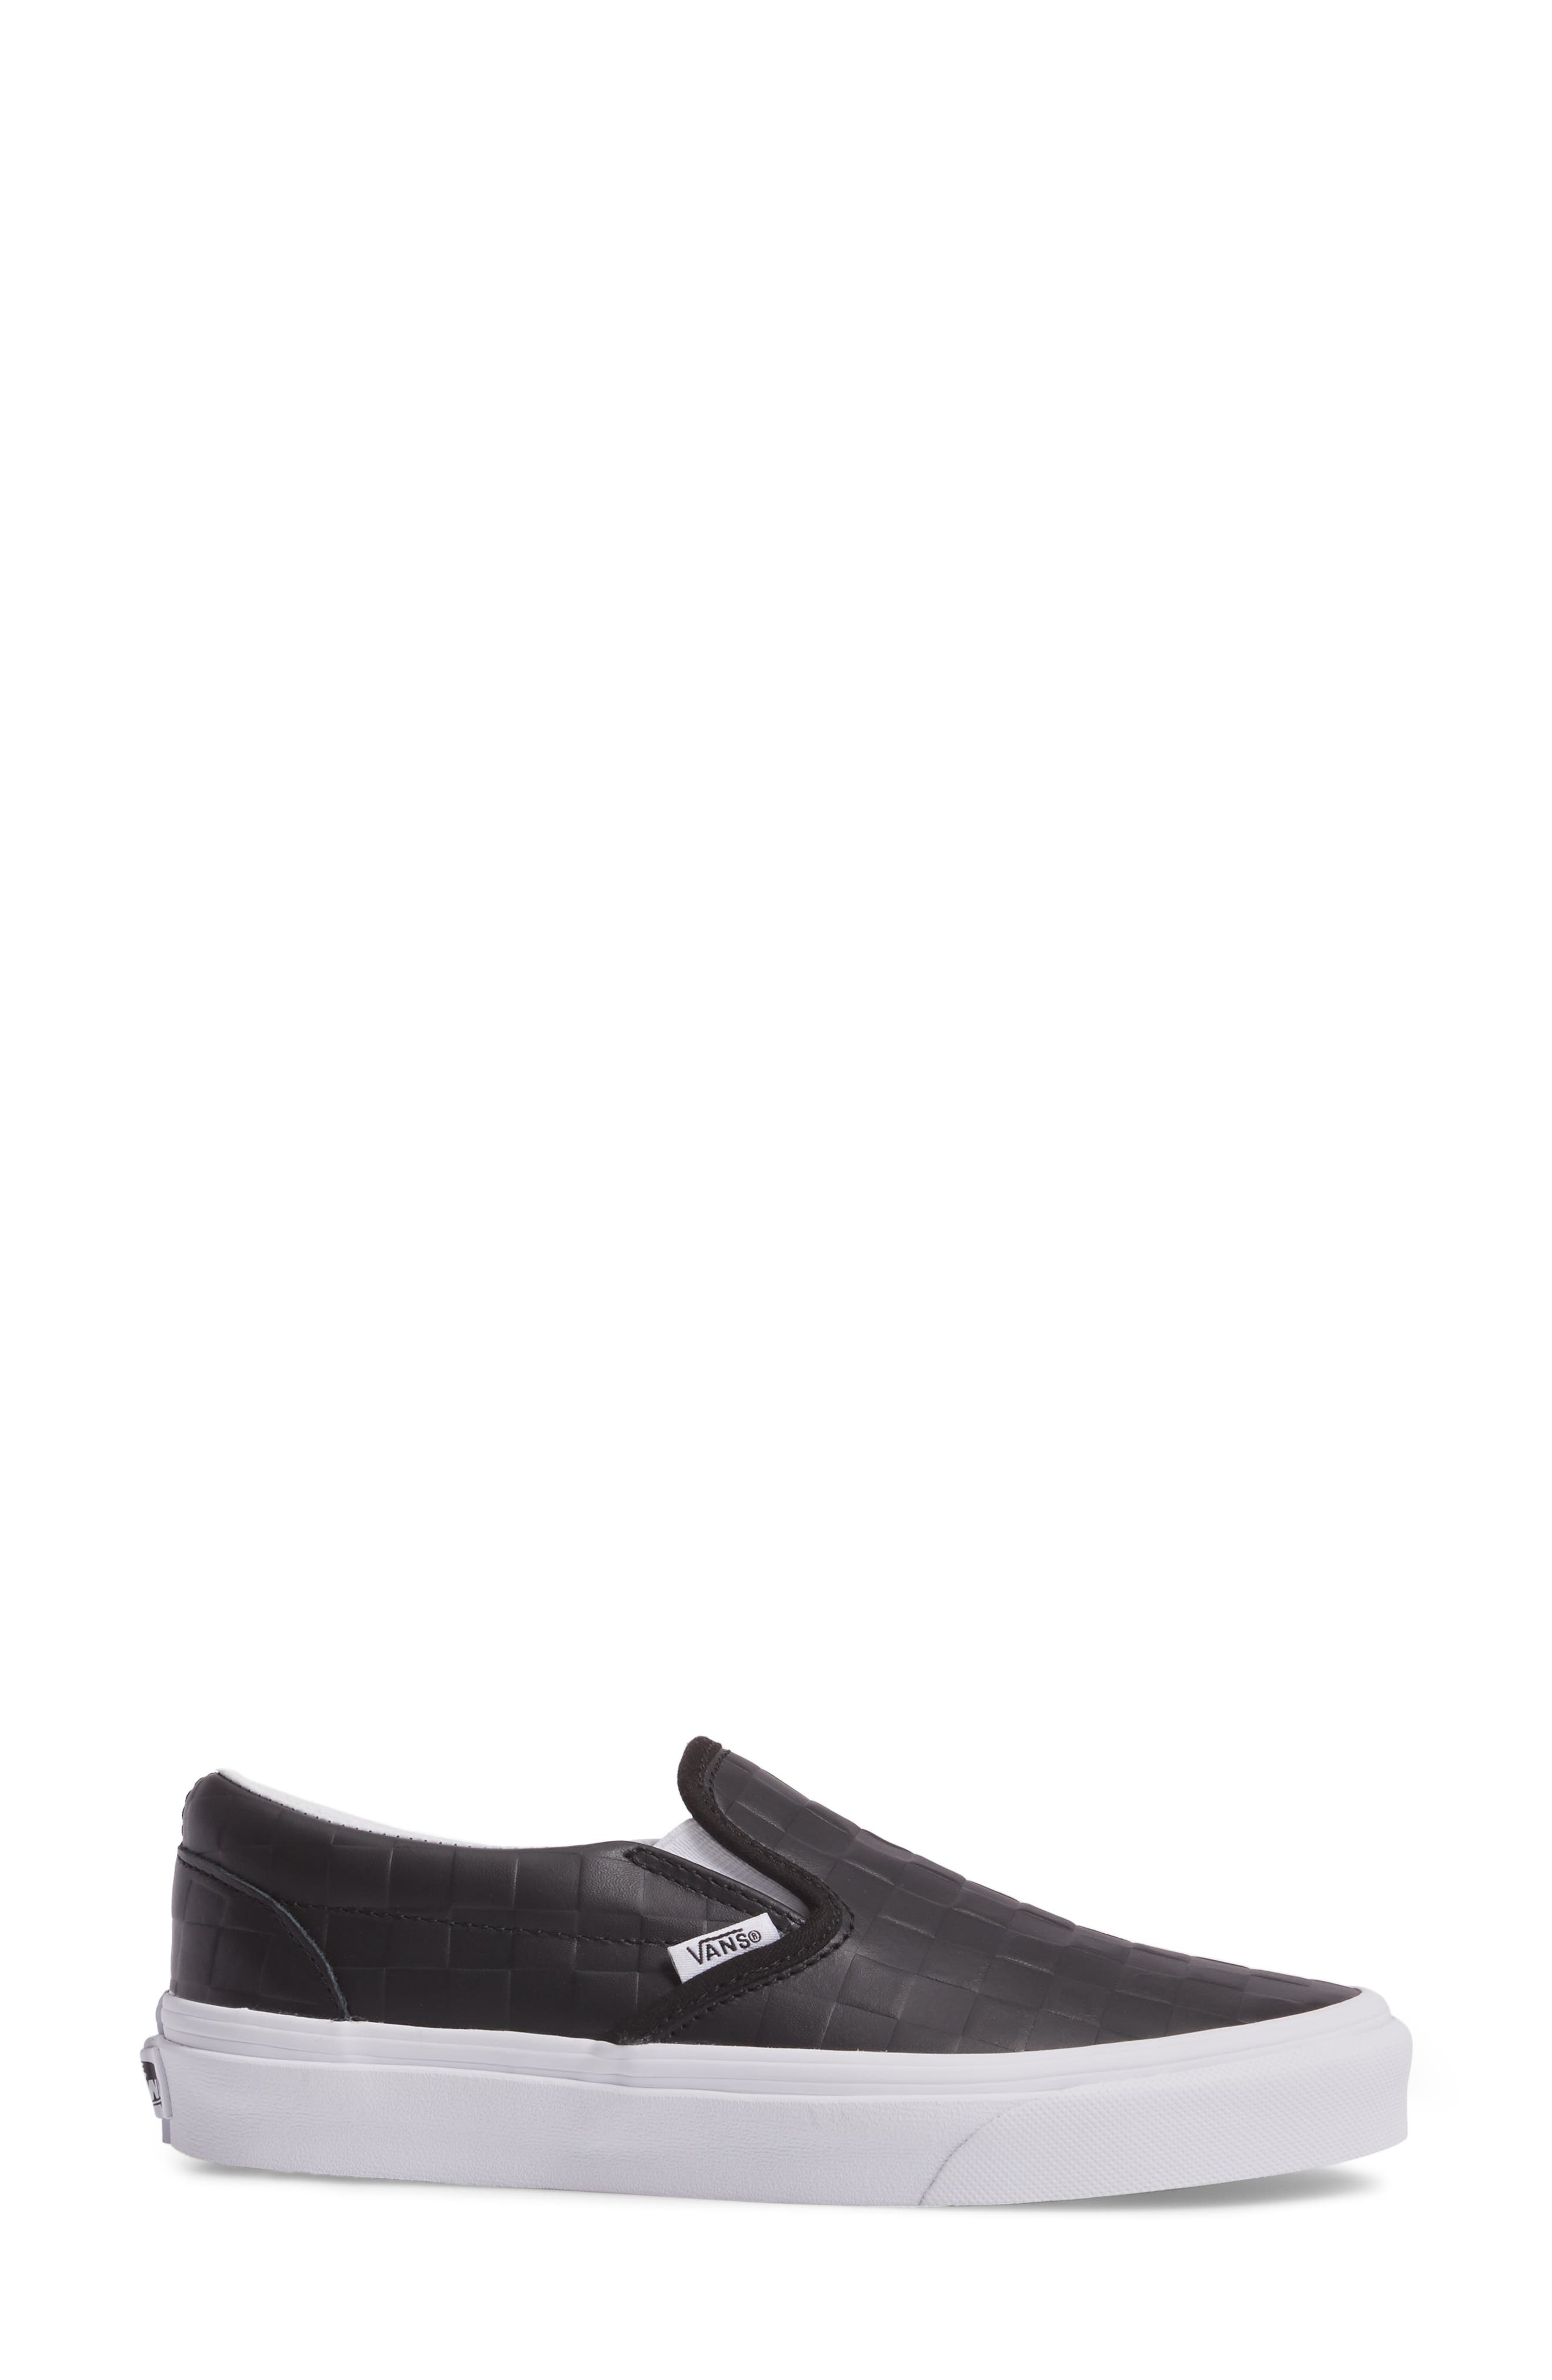 Classic Slip-On Sneaker,                             Alternate thumbnail 3, color,                             Checkerboard/ Black